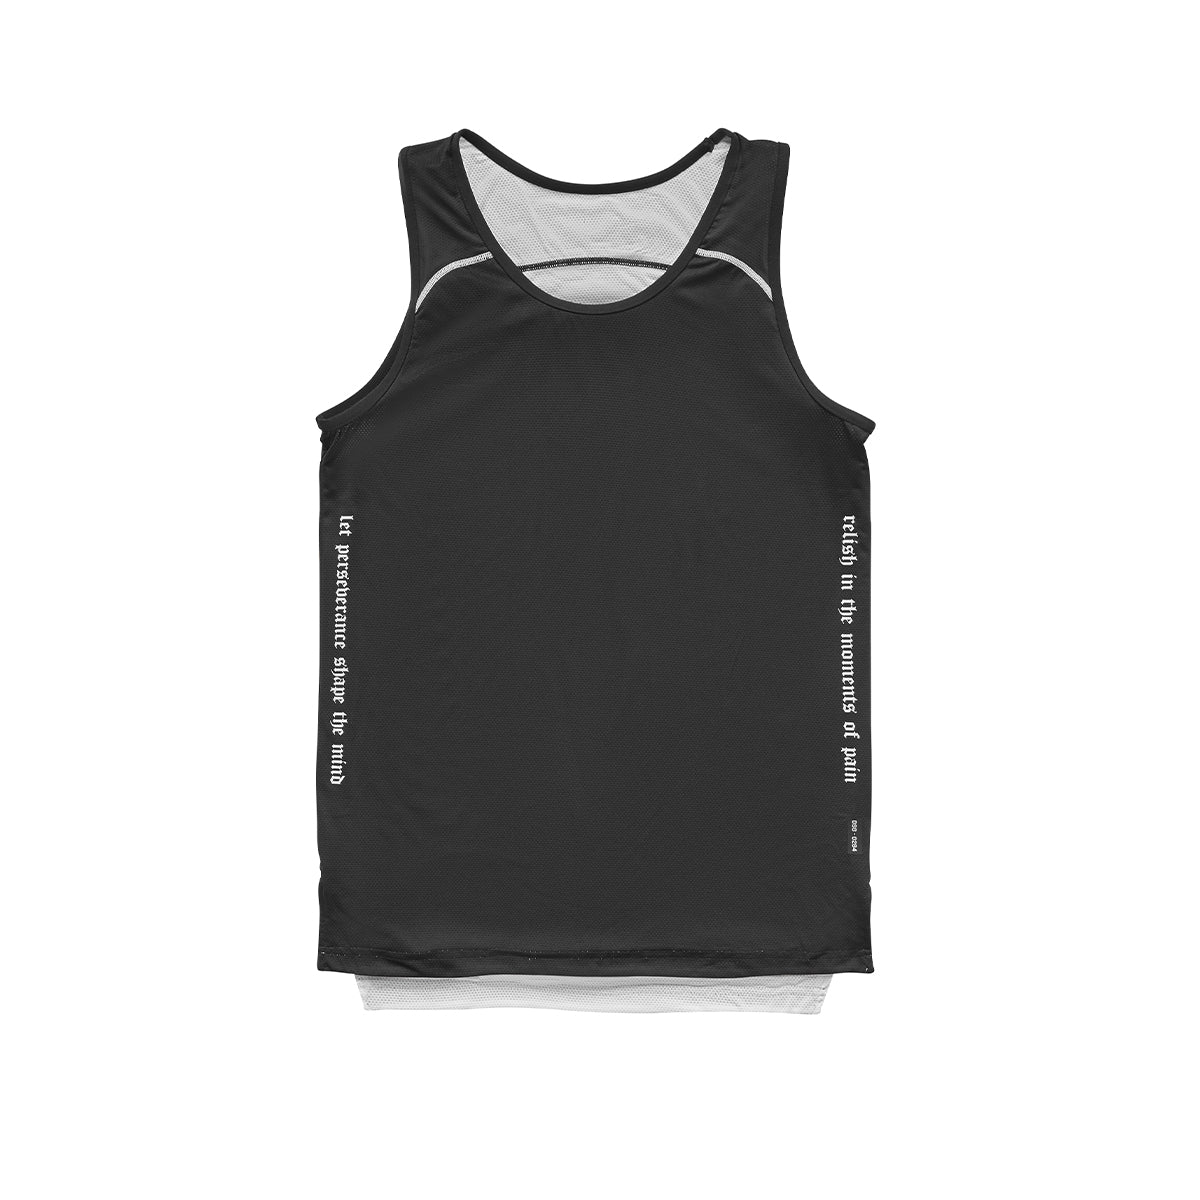 0294. SilverPlus® Reversible Jersey - Black/White